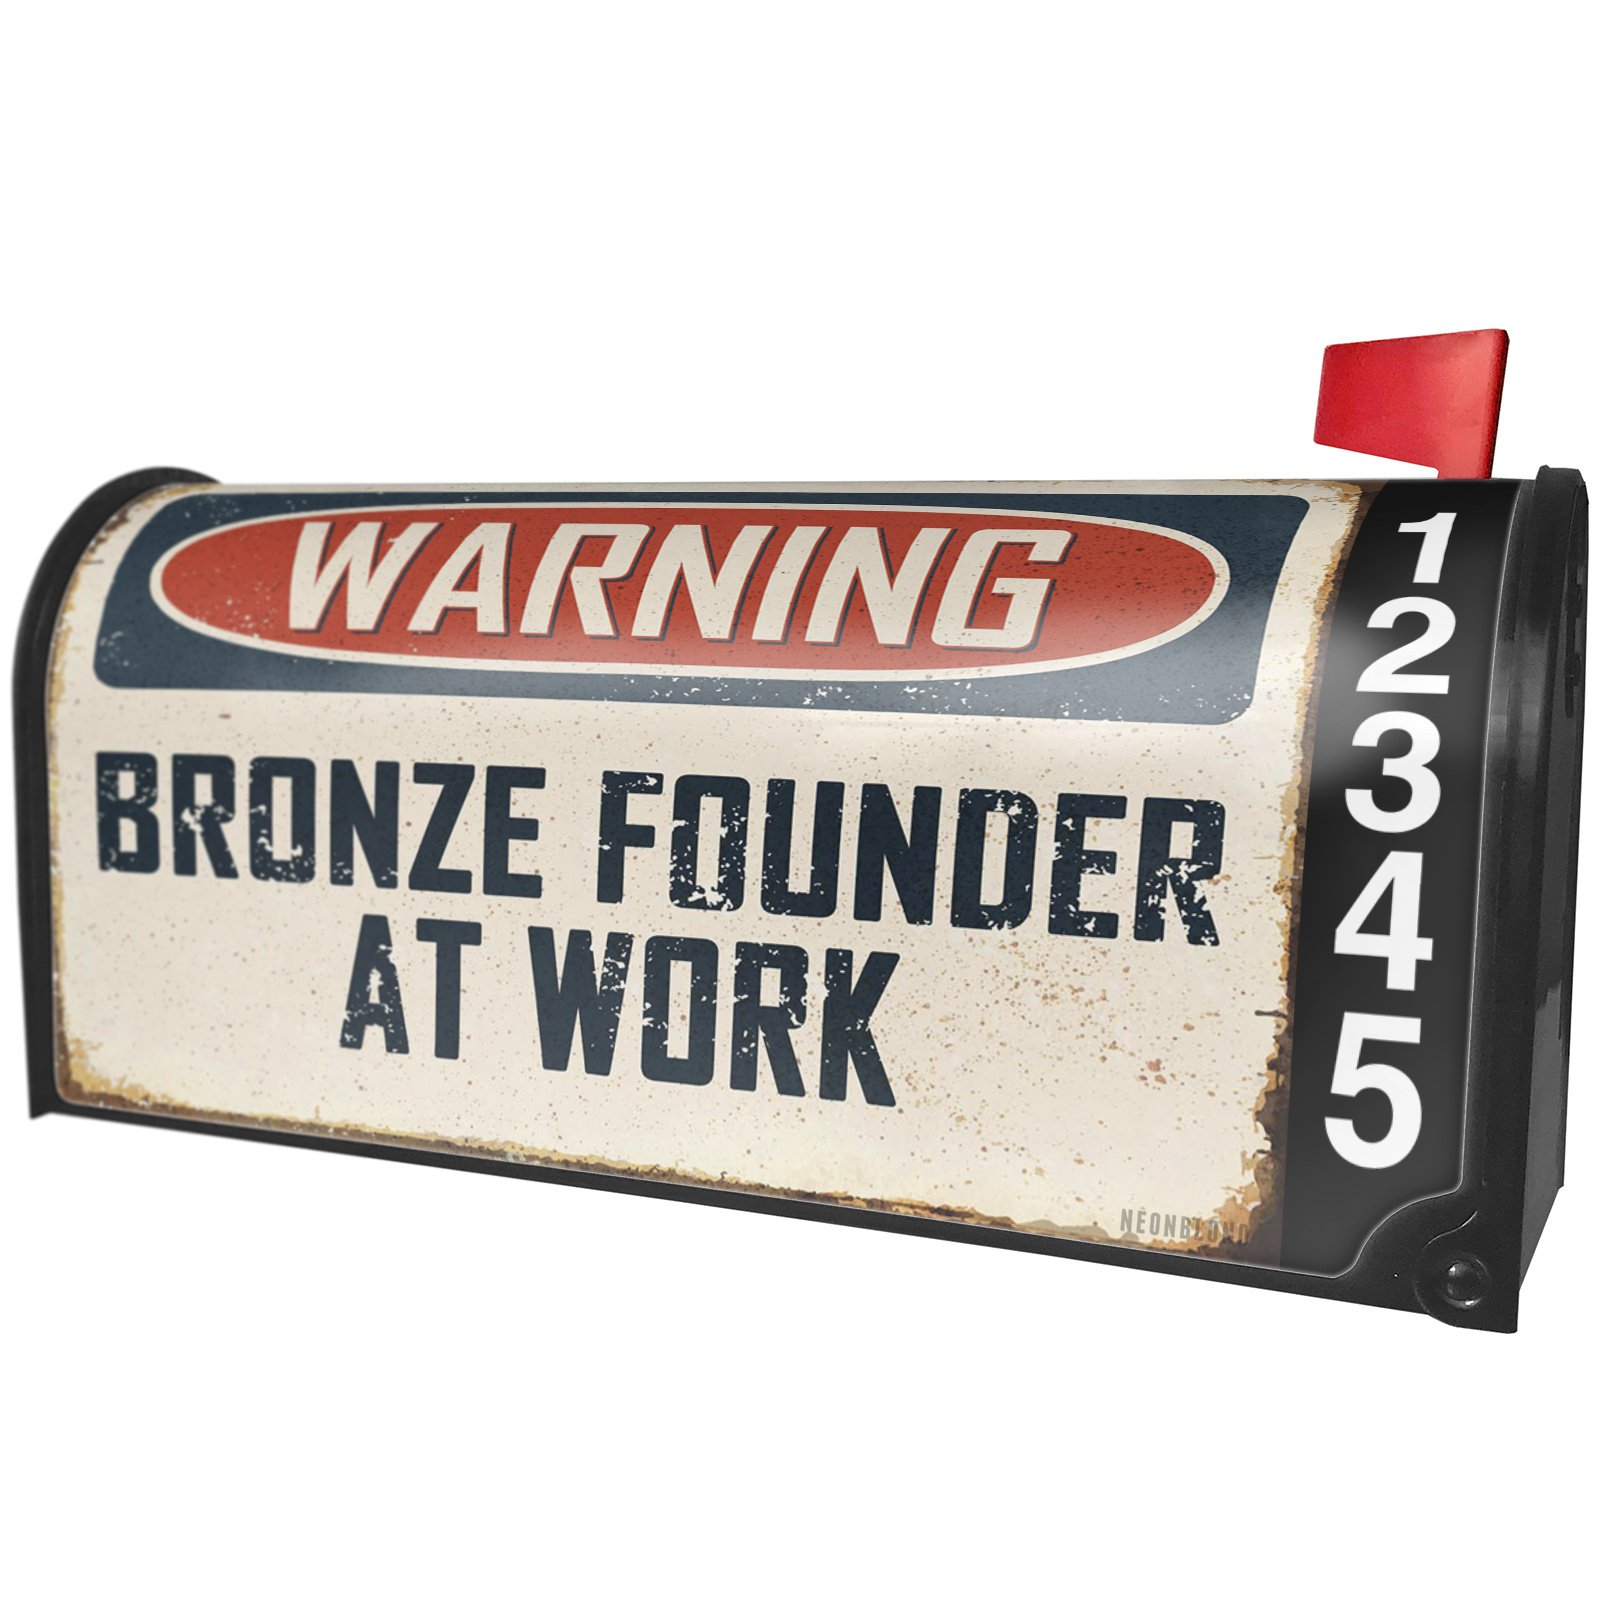 NEONBLOND Warning Bronze Founder At Work Vintage Fun Job Sign Magnetic Mailbox Cover Custom Numbers